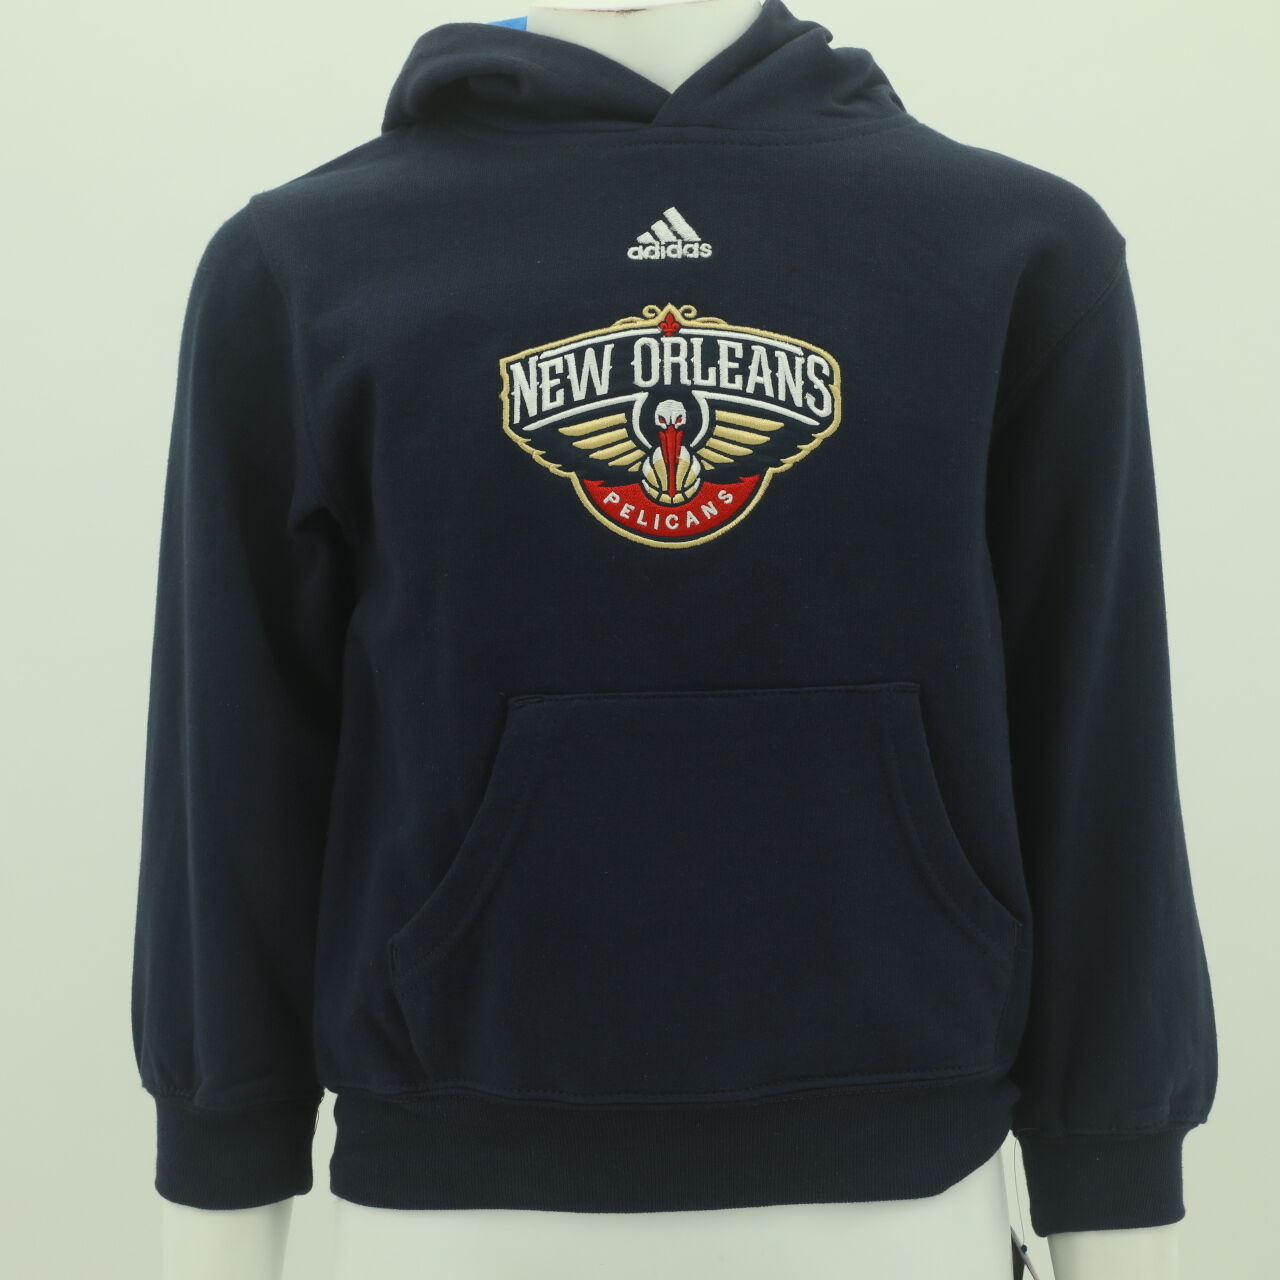 New Orleans Pelicans Official Nba Adidas Youth Kids Size